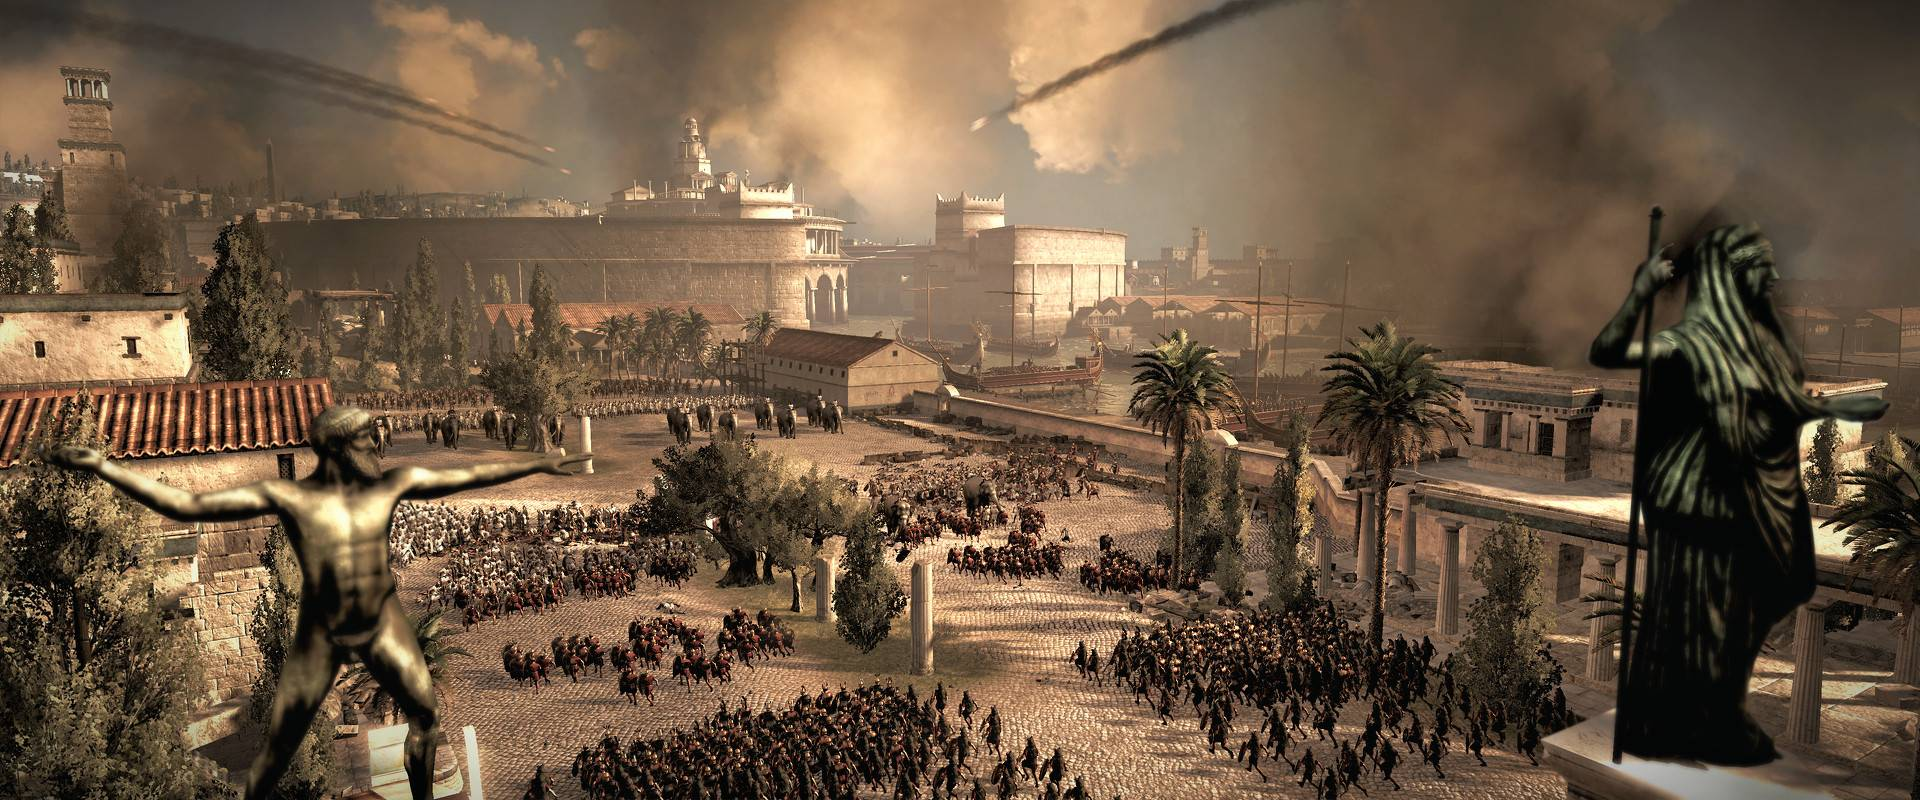 total-war-rome-ii-gamescom-2-299186-1427390114